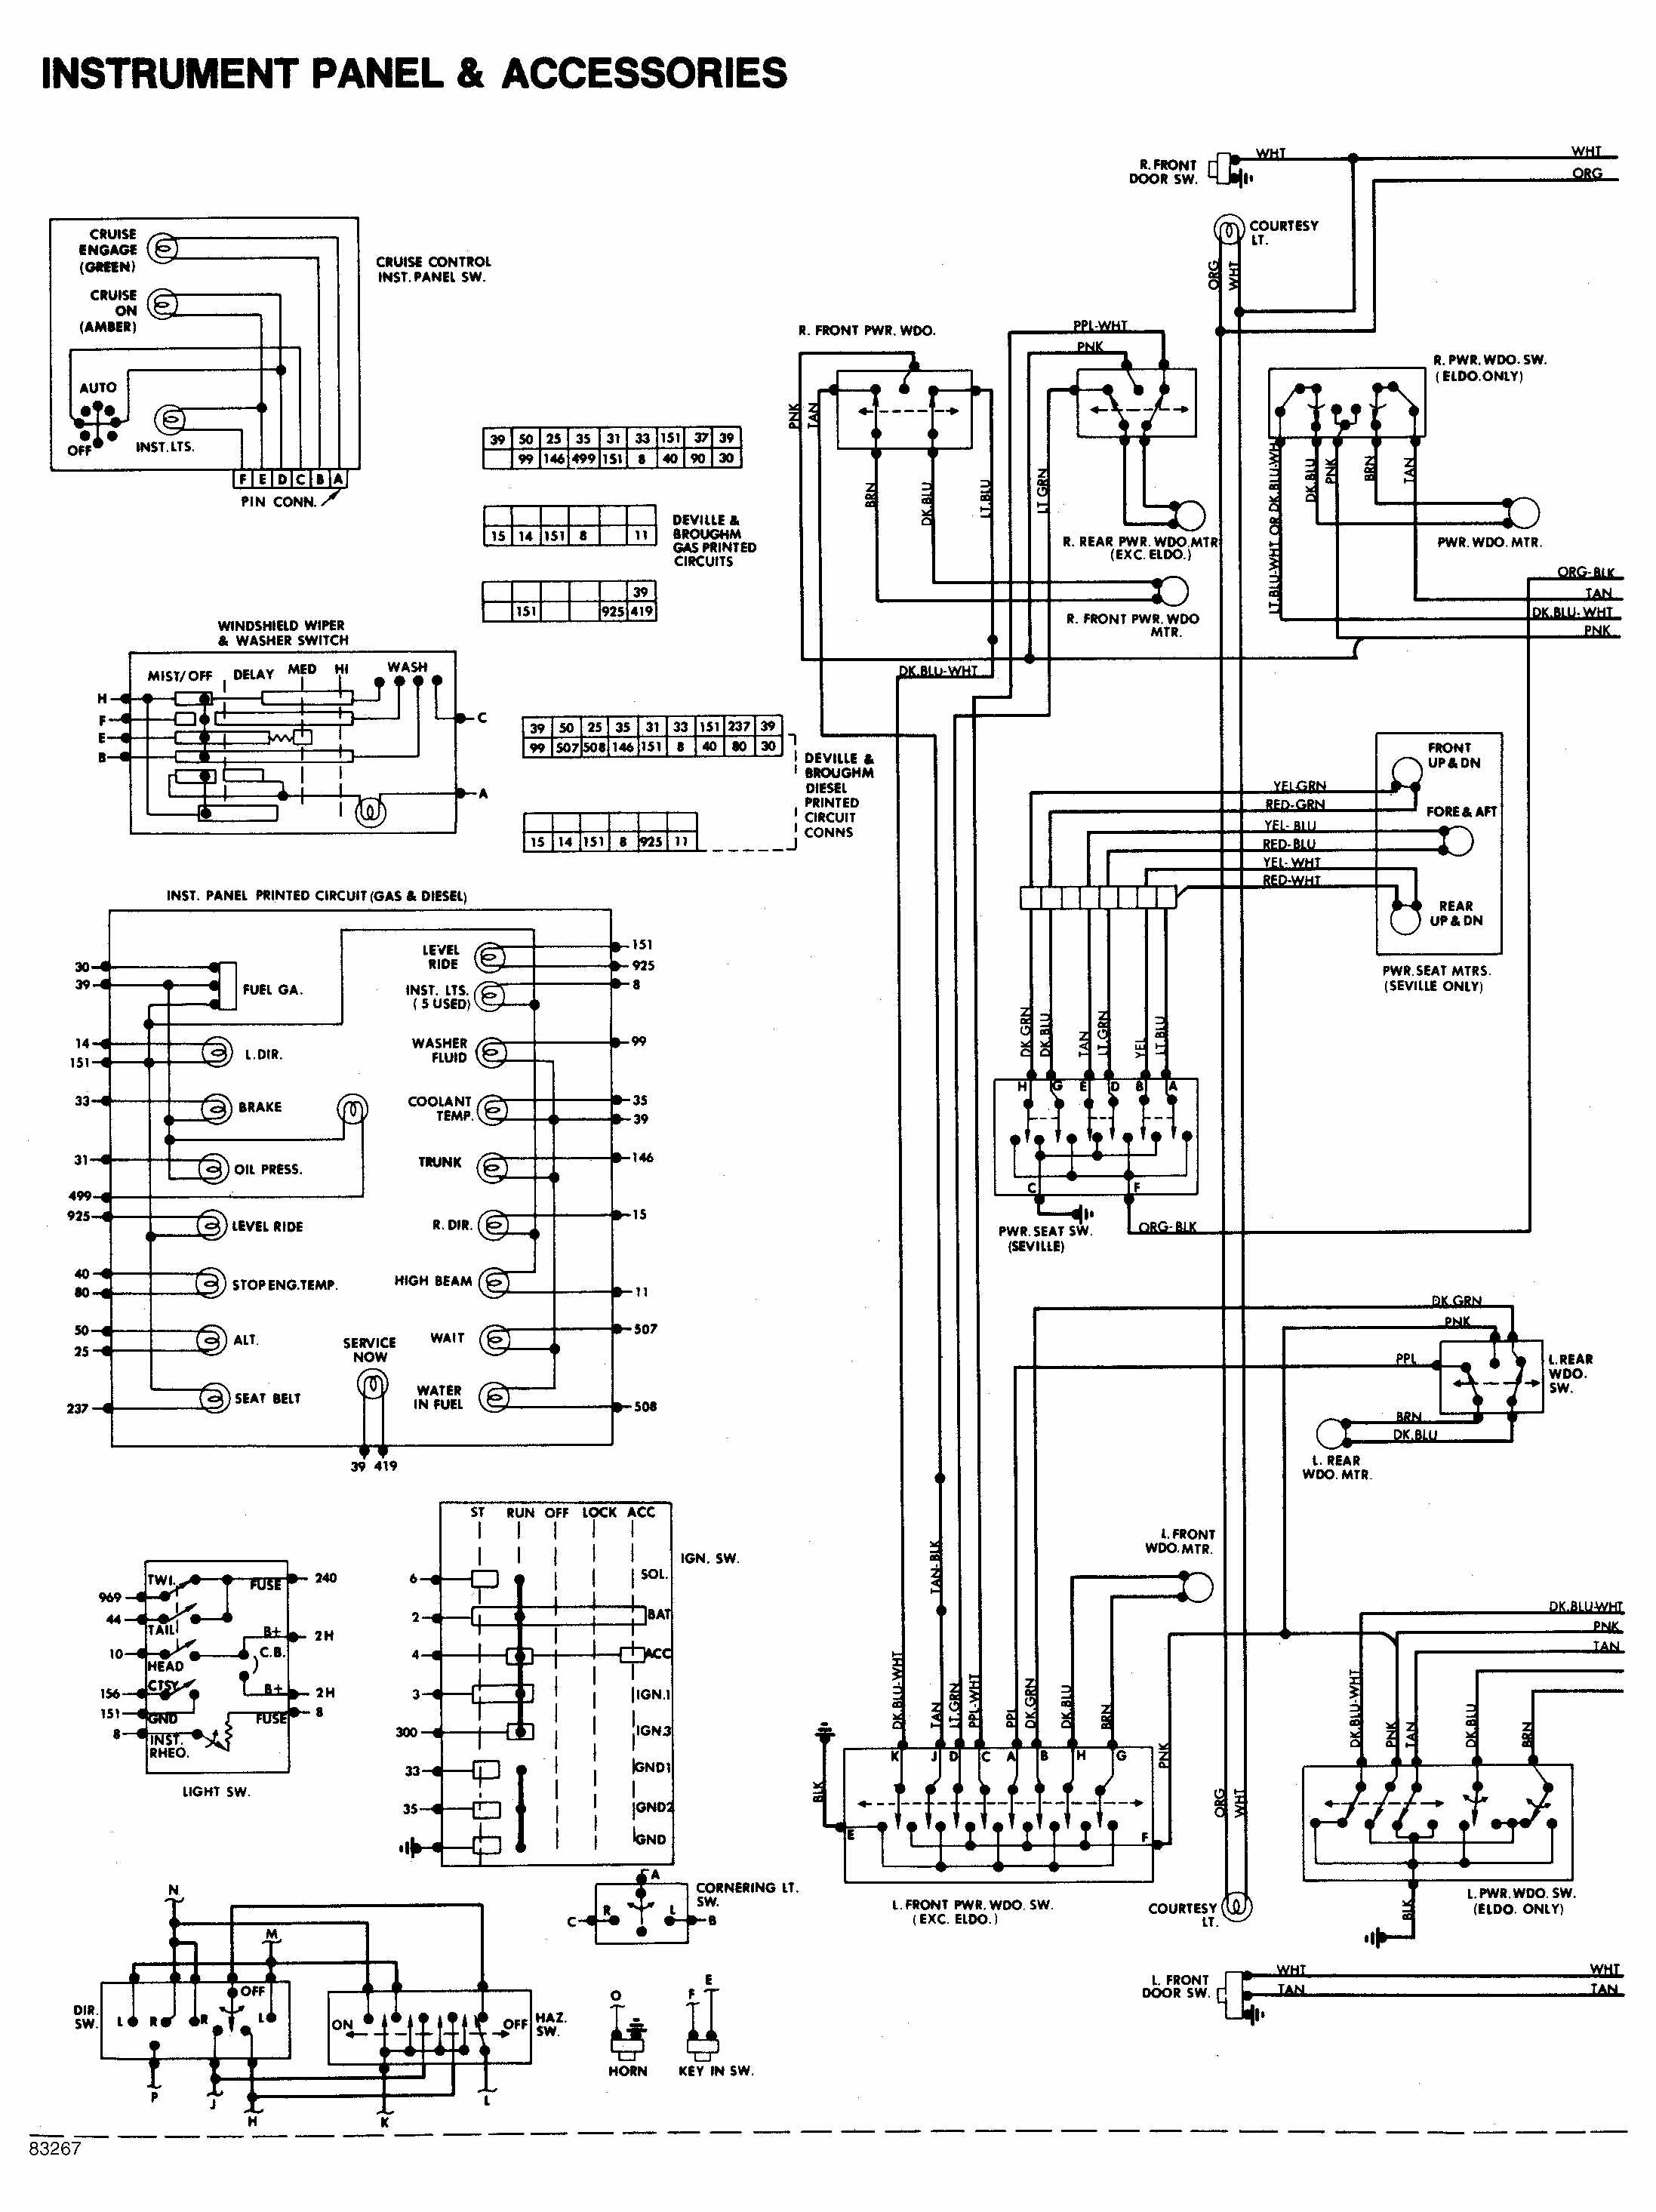 2005 Ford Taurus Wiring Diagram further 2632886 Electrical Problem further Msd Hei Distributor Wiring Diagram together with Chevy Diagrams additionally Cadillac Srx Mk1 First Generation 2004 2006 Fuse Box Diagram. on power window switch wiring diagram